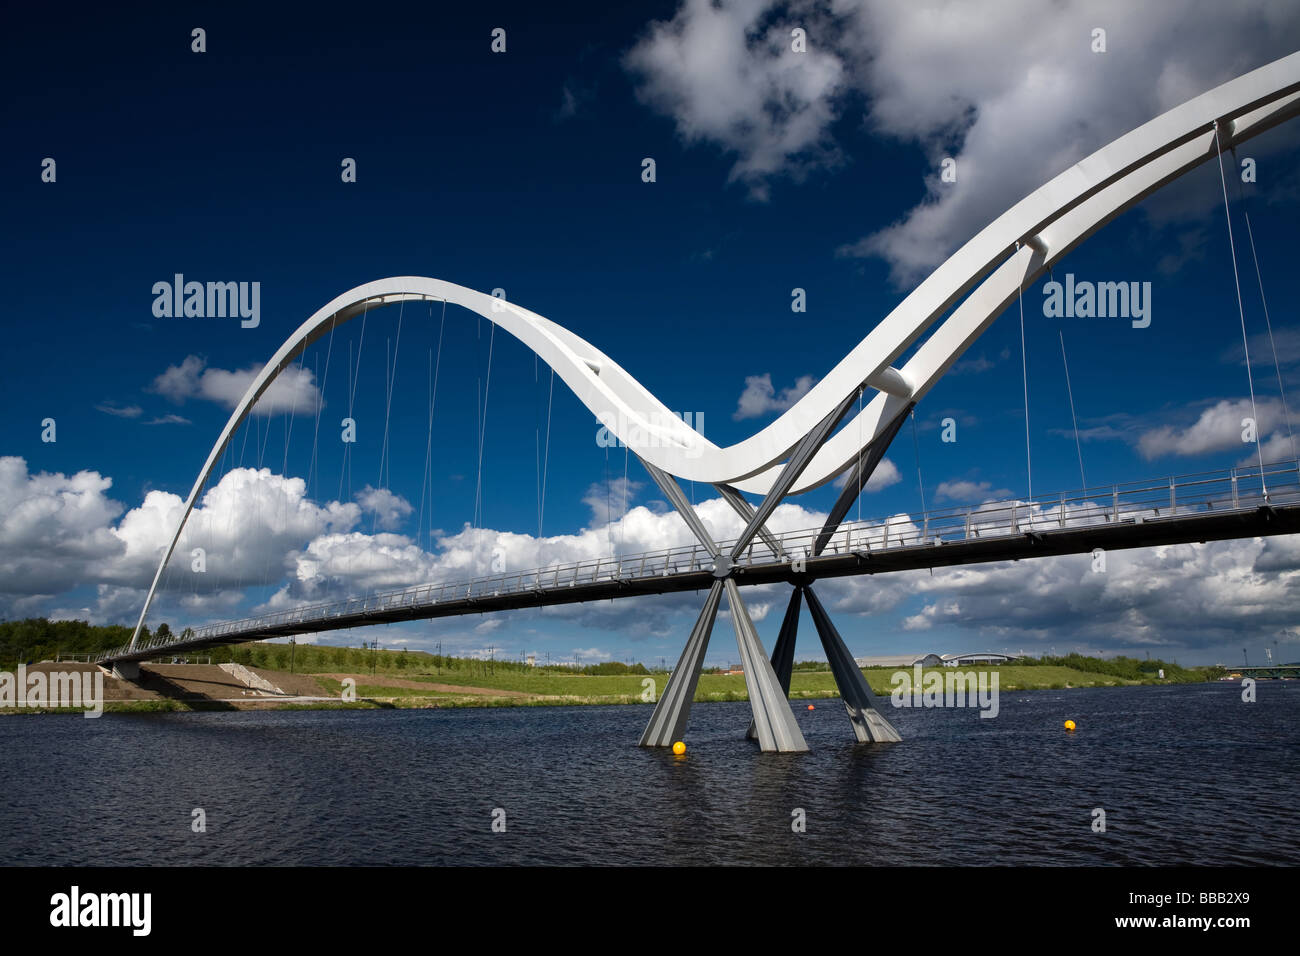 The Infinity Bridge over the River Tees Stockton on Tees Cleveland England - Stock Image